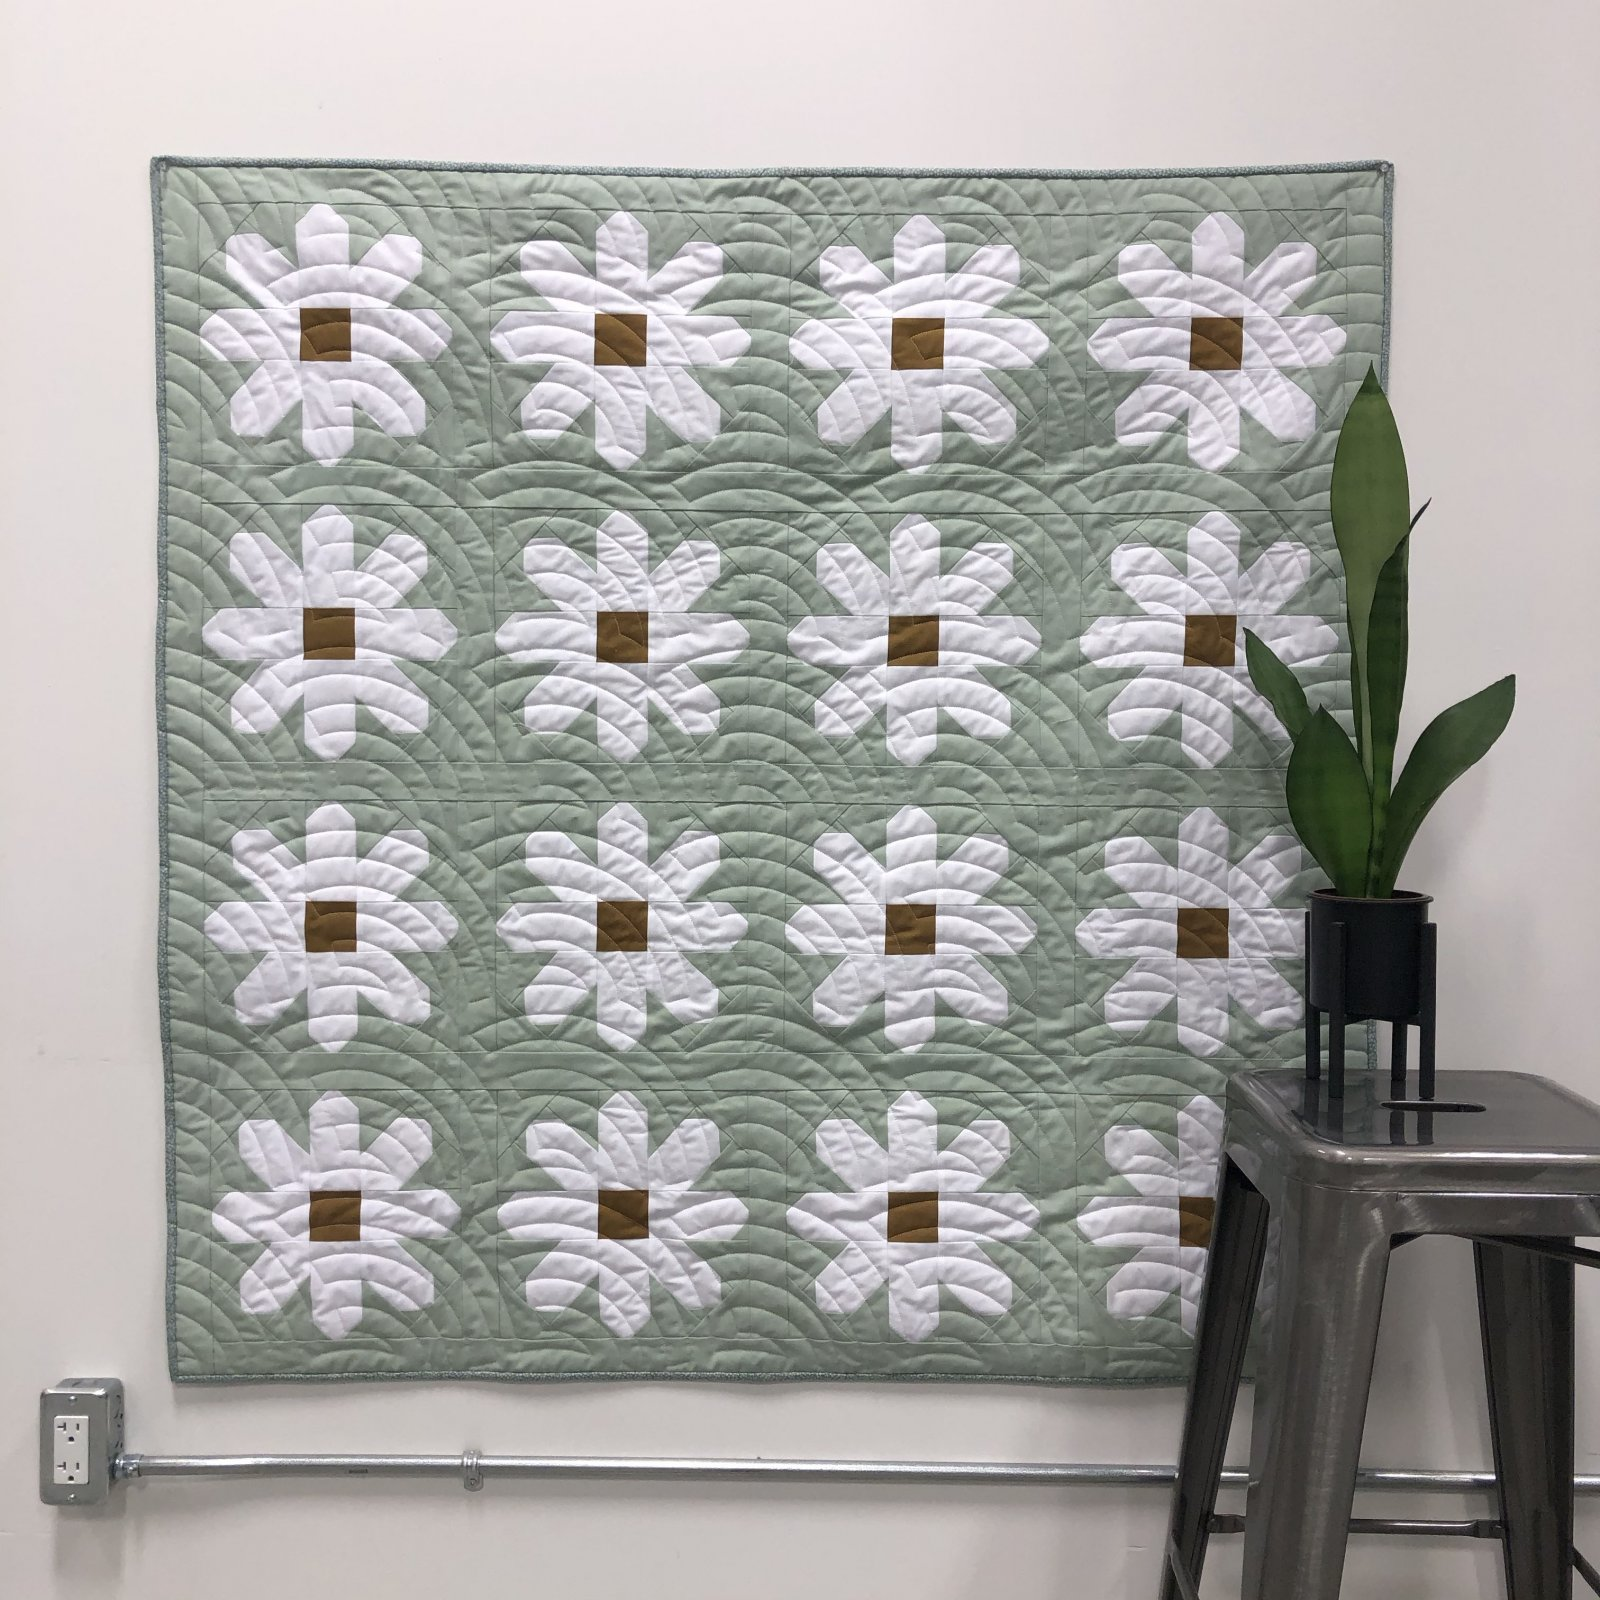 Fresh As A Daisy Baby Quilt Kit